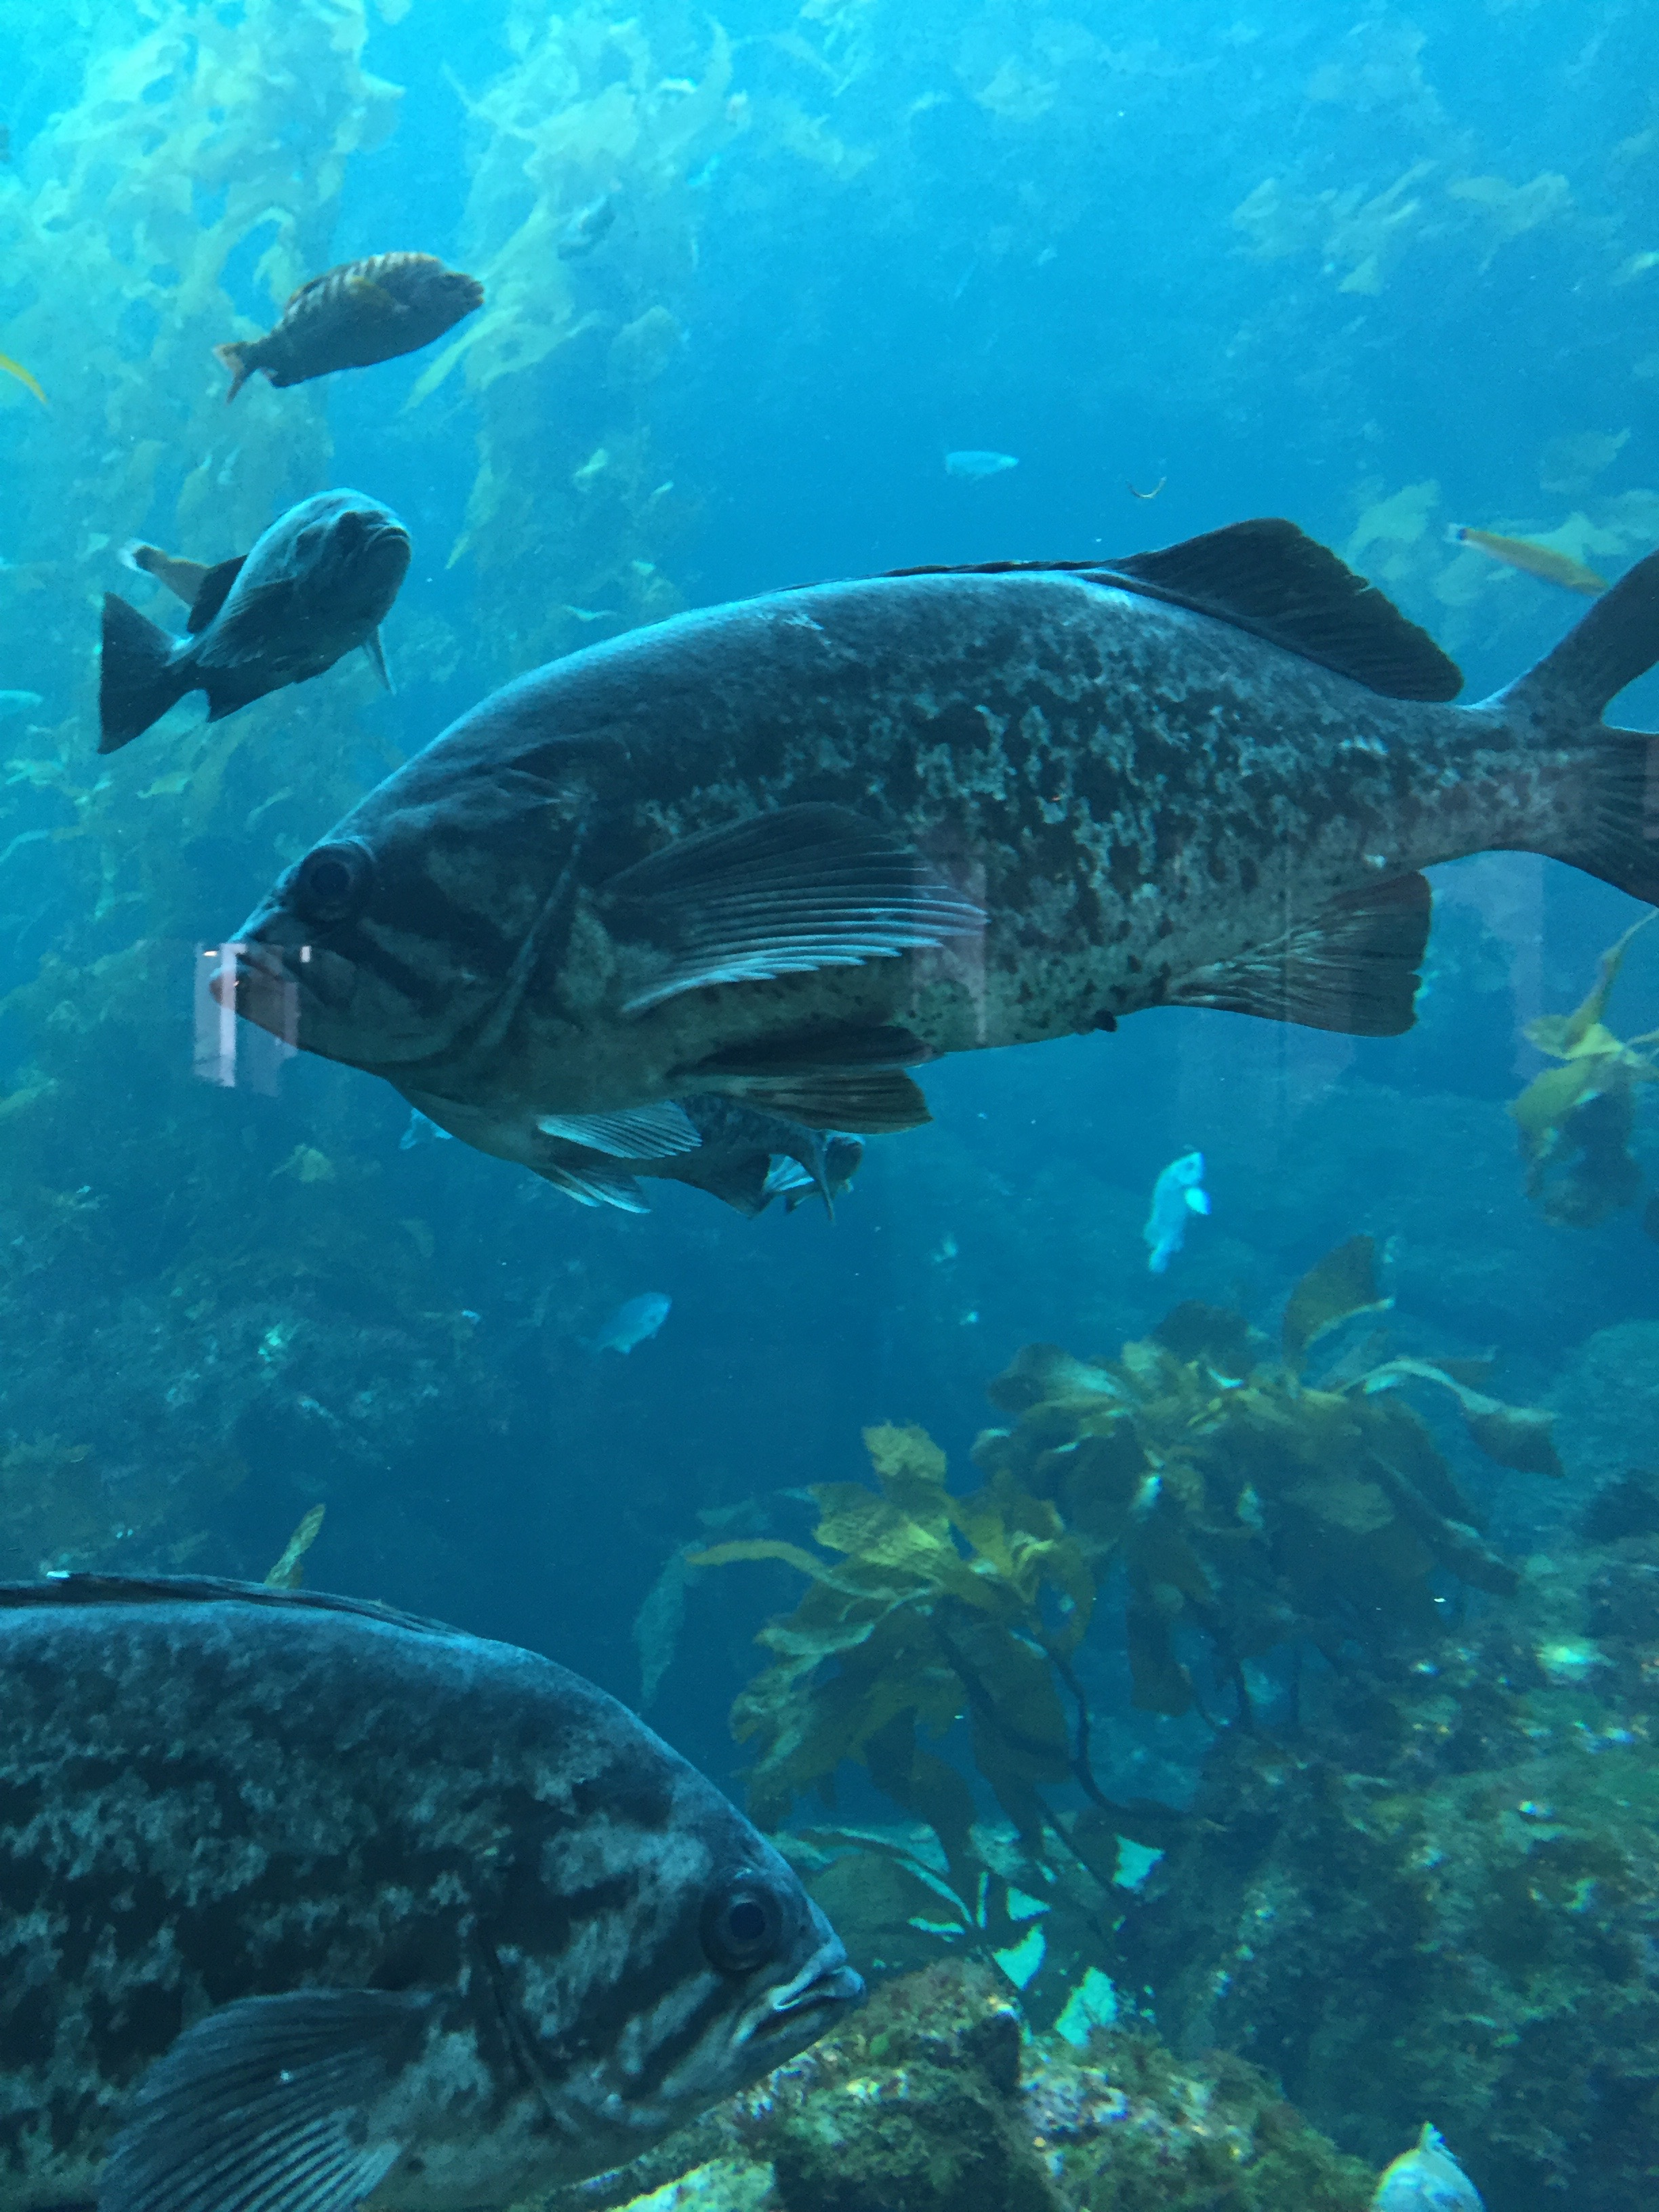 California sea bass. monterey aquarium. photo: M.Darby